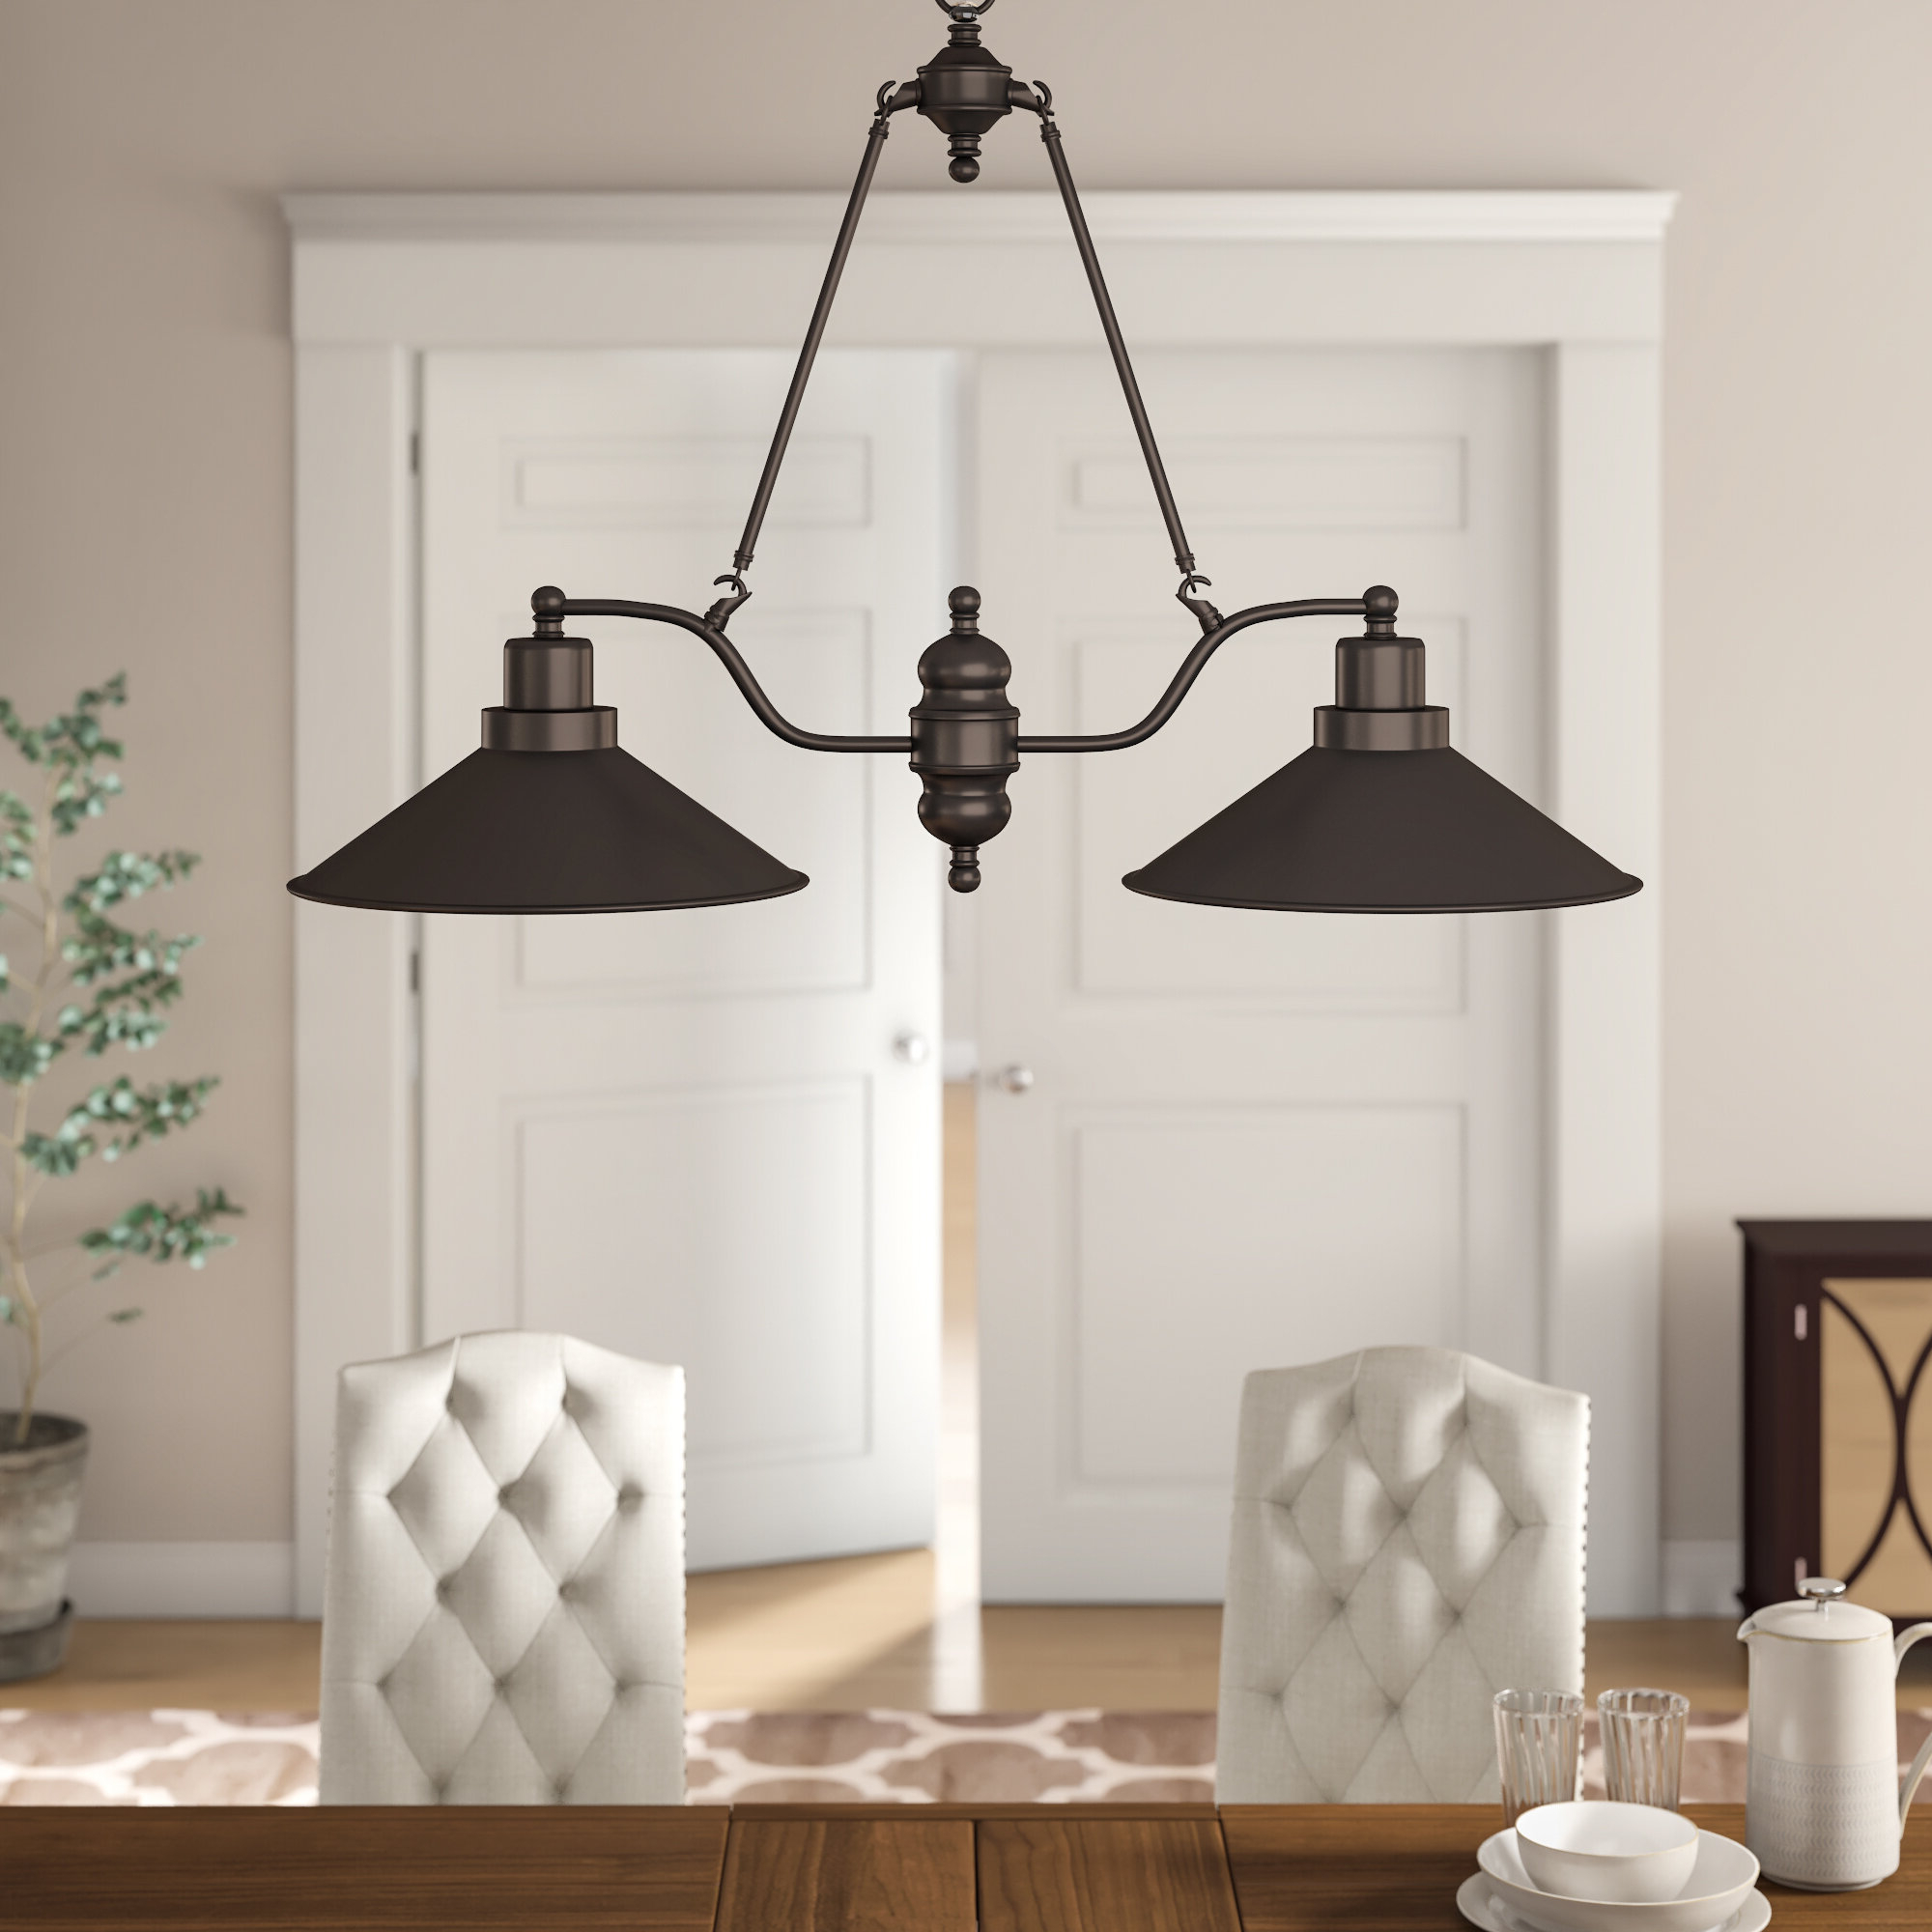 Well Known Ariel 2 Light Kitchen Island Dome Pendants In Trent Austin Design Euclid 2 Light Kitchen Island Linear Pendant (View 20 of 20)